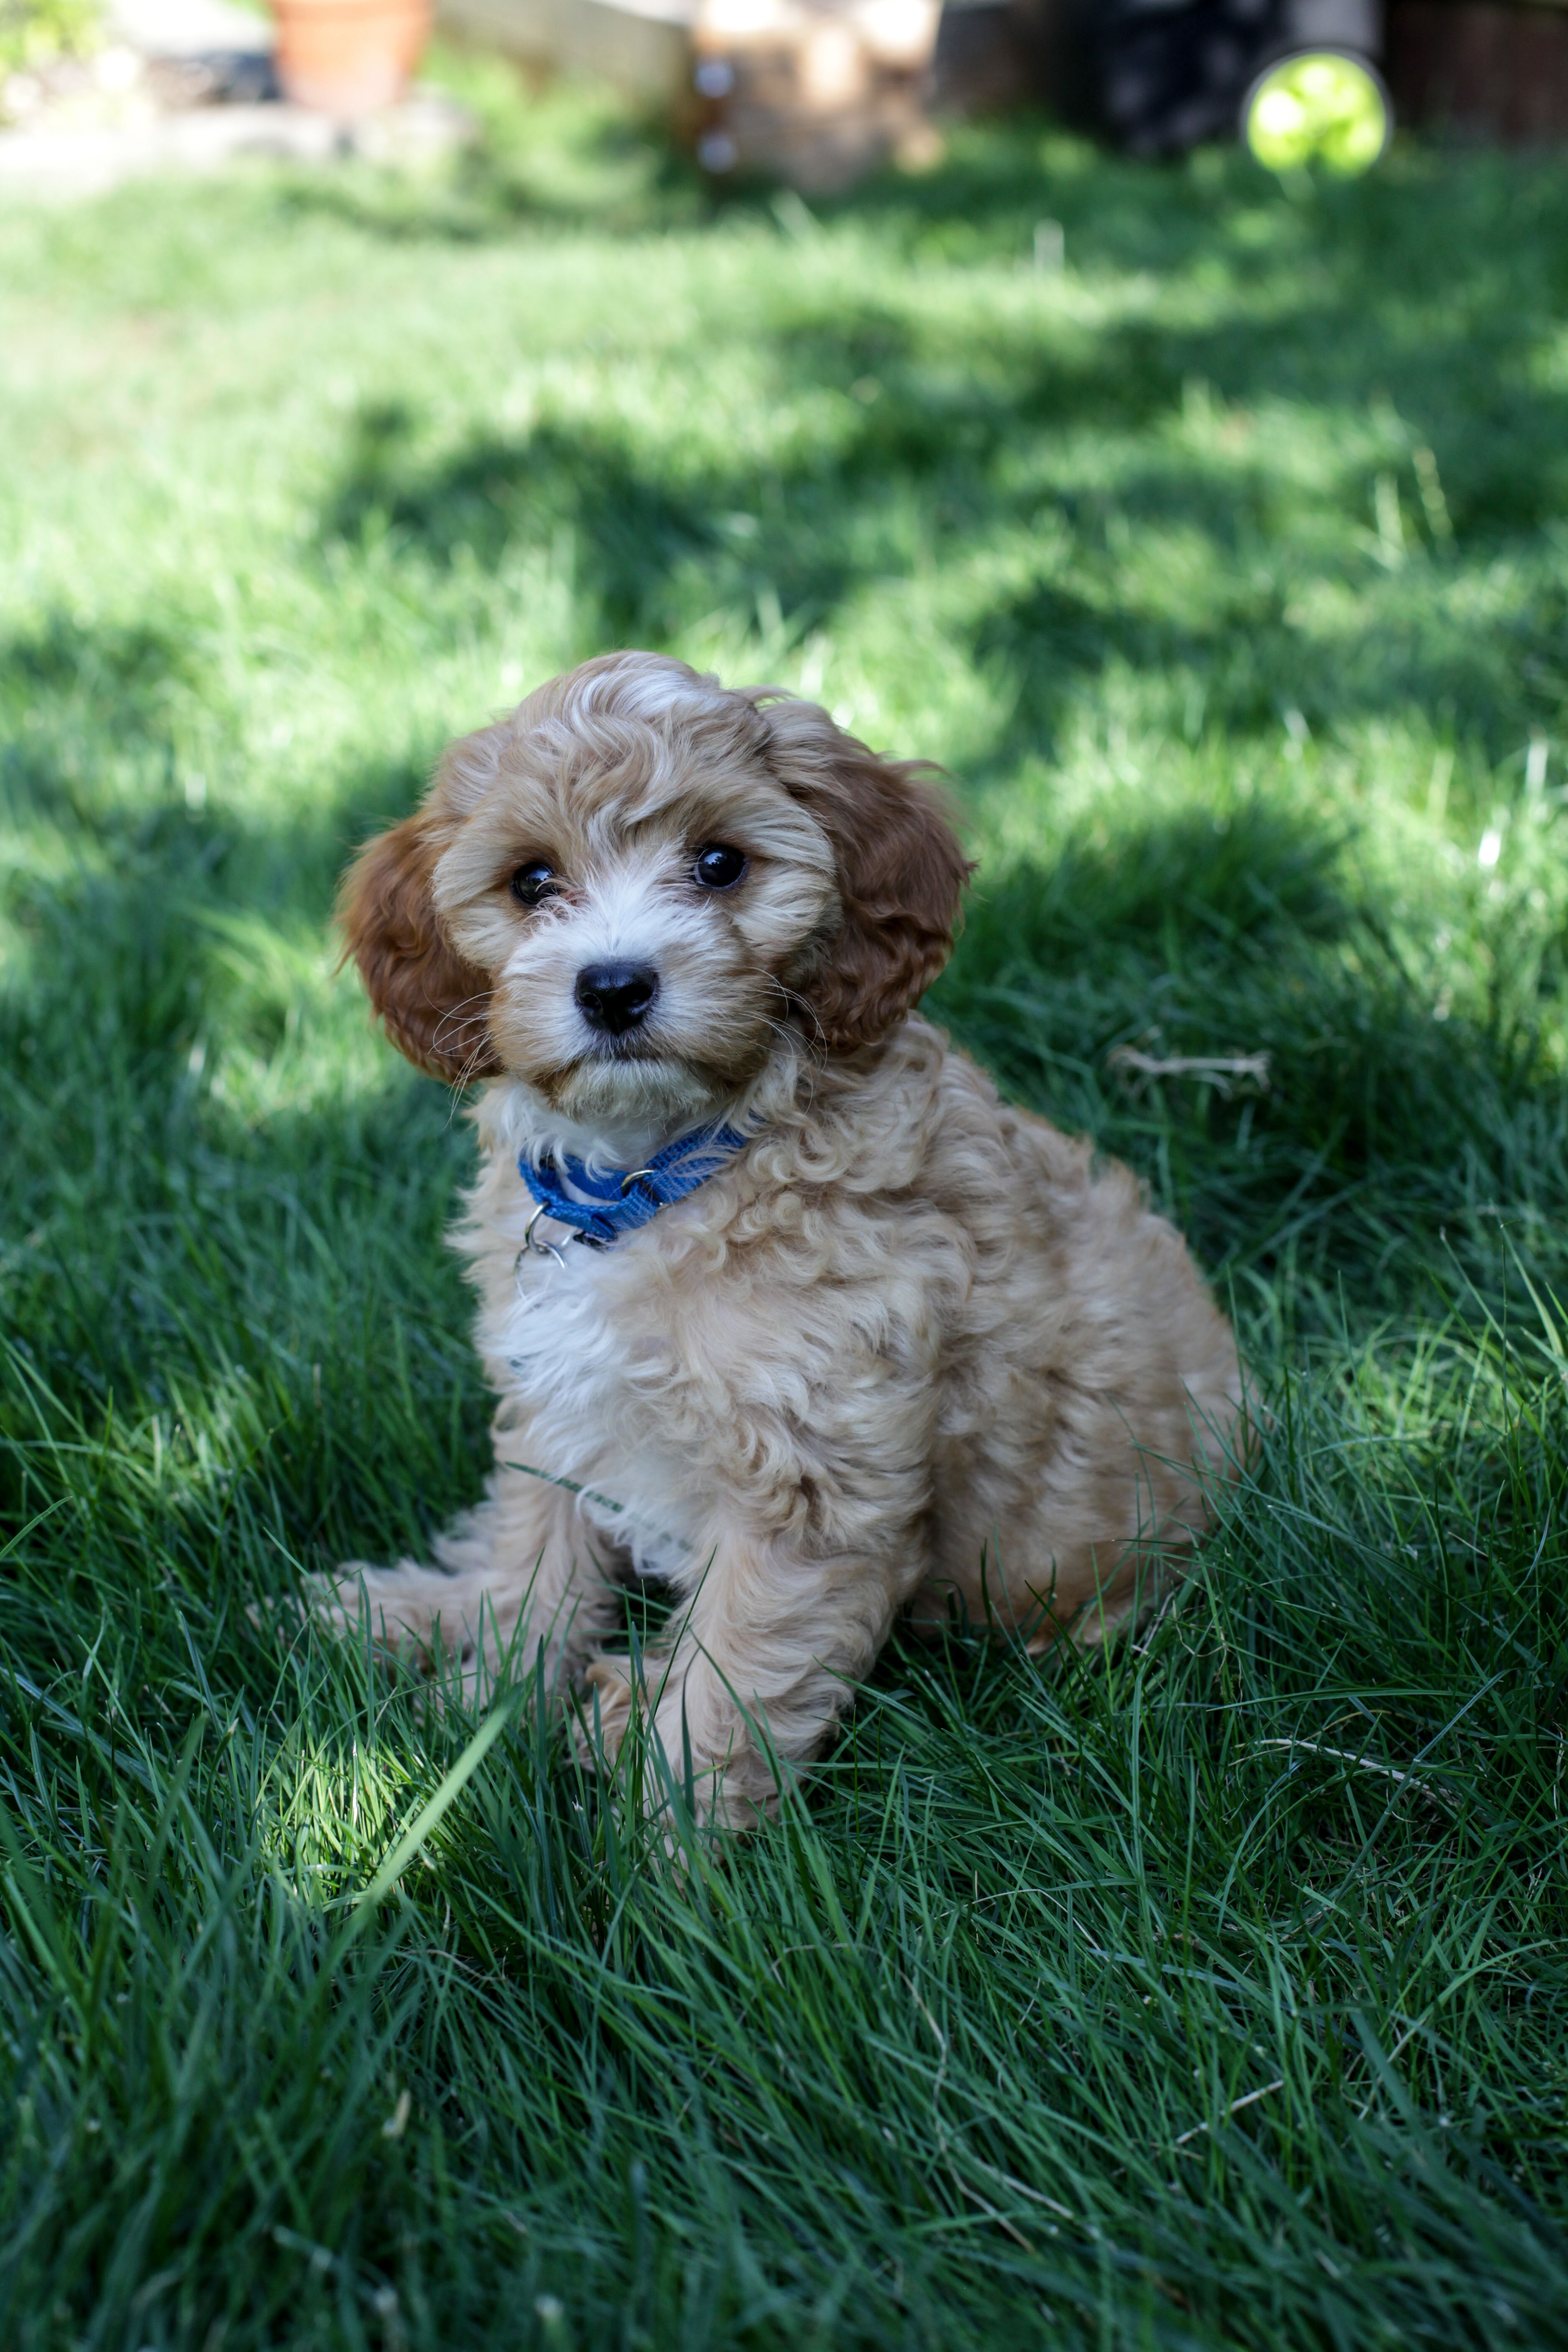 Whiskey The Cavapoo Puppy At 2 1 2 Months Old Ourdogwhiskey Cavapoo Puppies Cavapoo Puppies